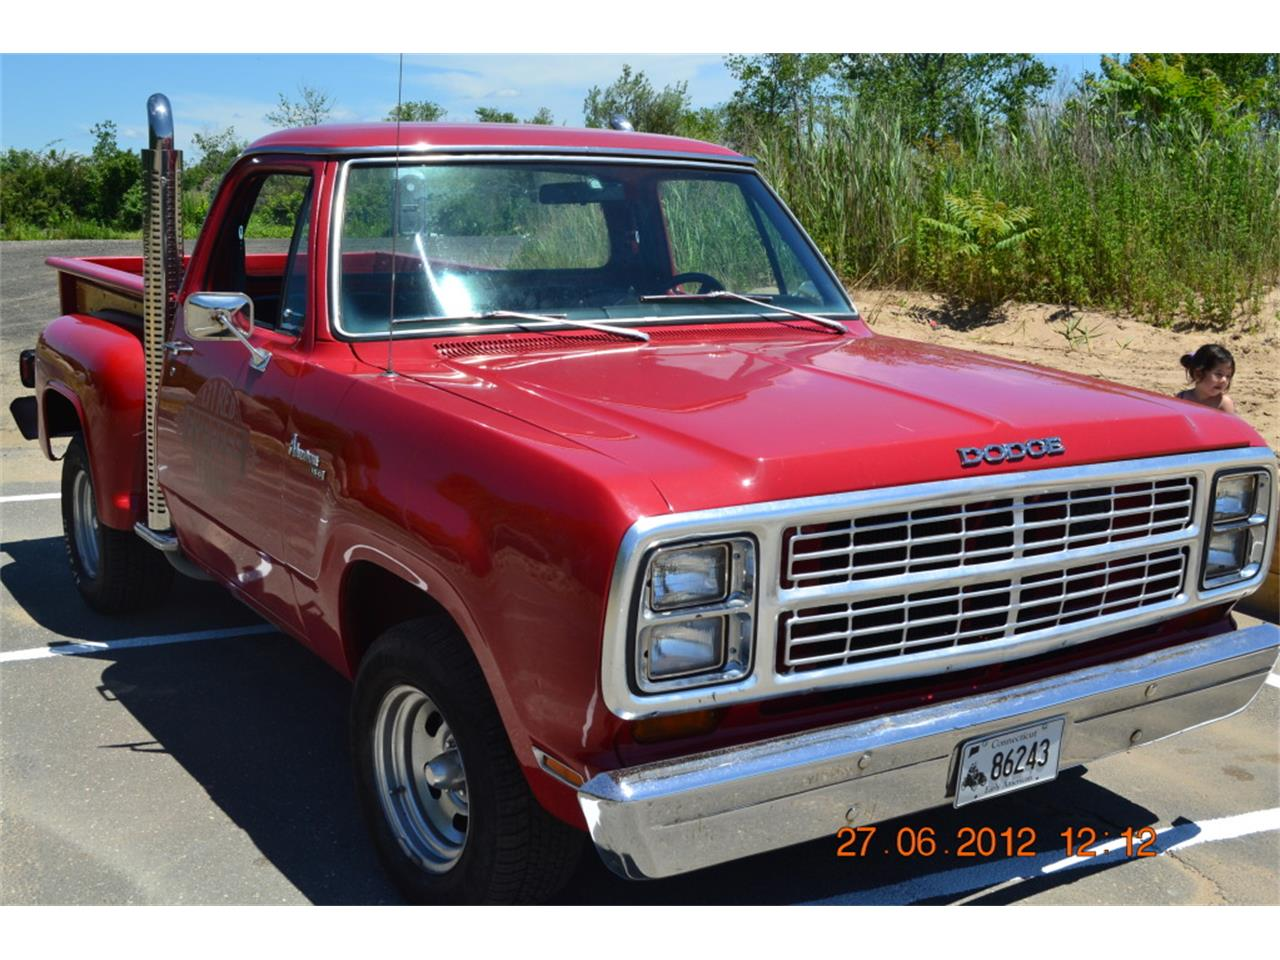 Large Picture of '79 Little Red Express - $19,950.00 Offered by a Private Seller - EHSU